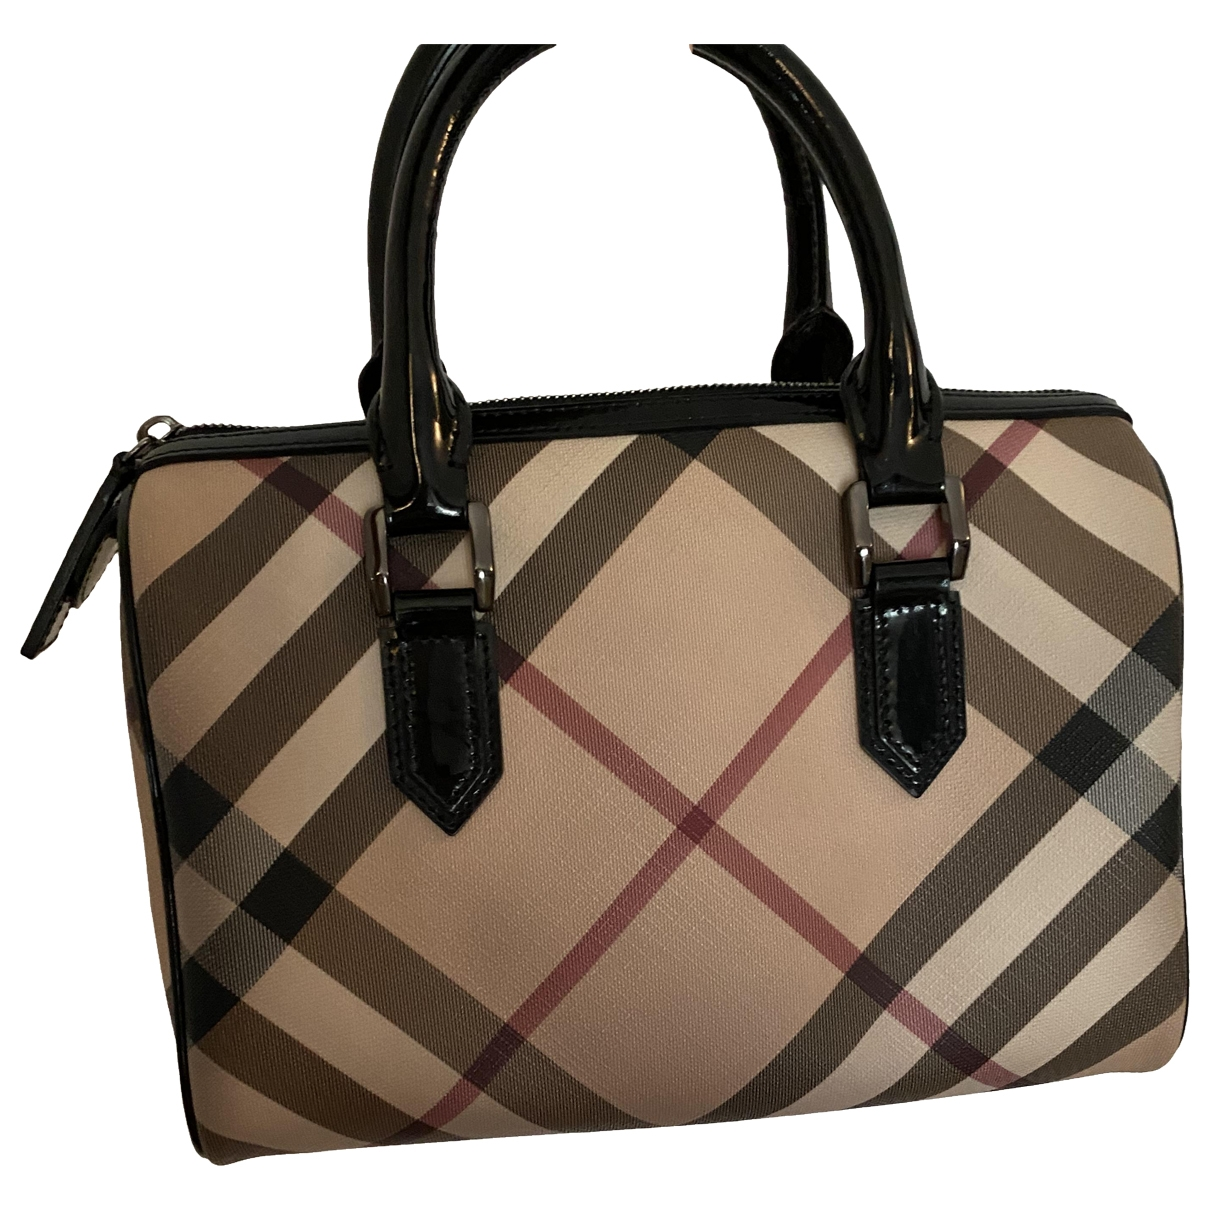 Burberry \N Beige Cloth handbag for Women \N